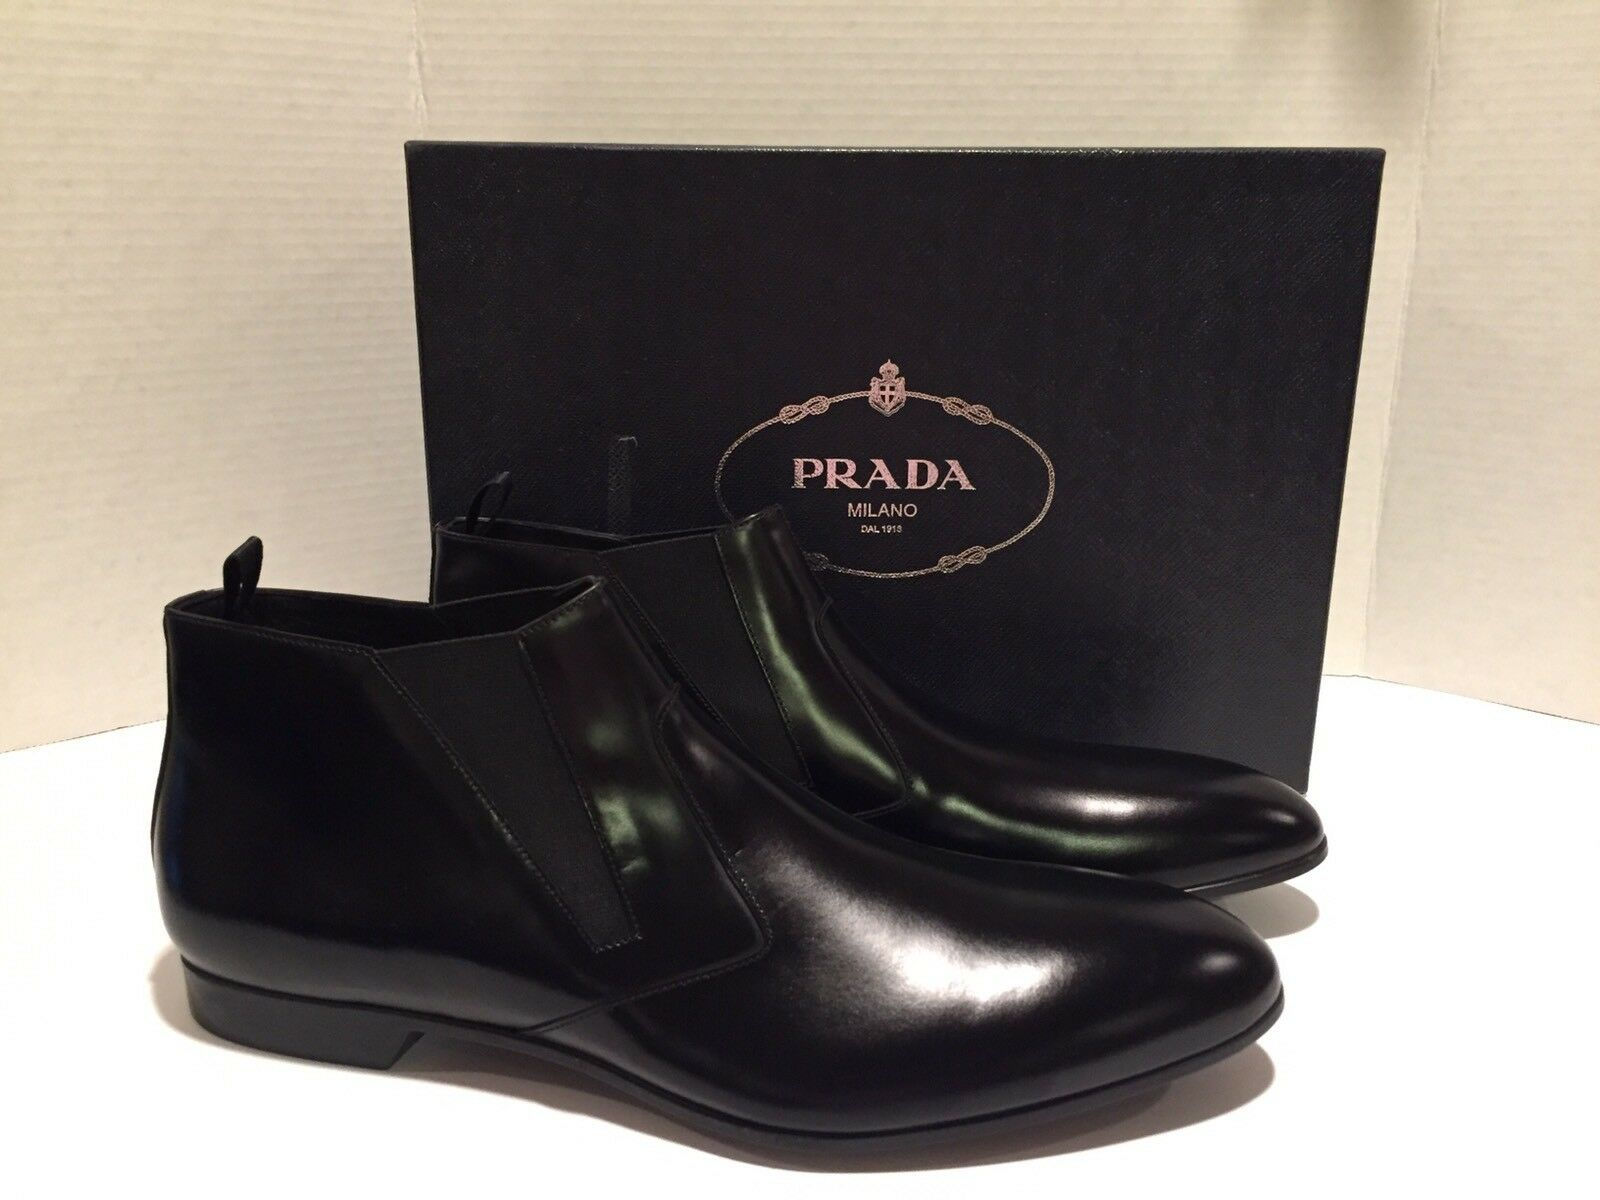 Prada Men's Ankle Boots Water Repellent Leather Black 10  795 NWB